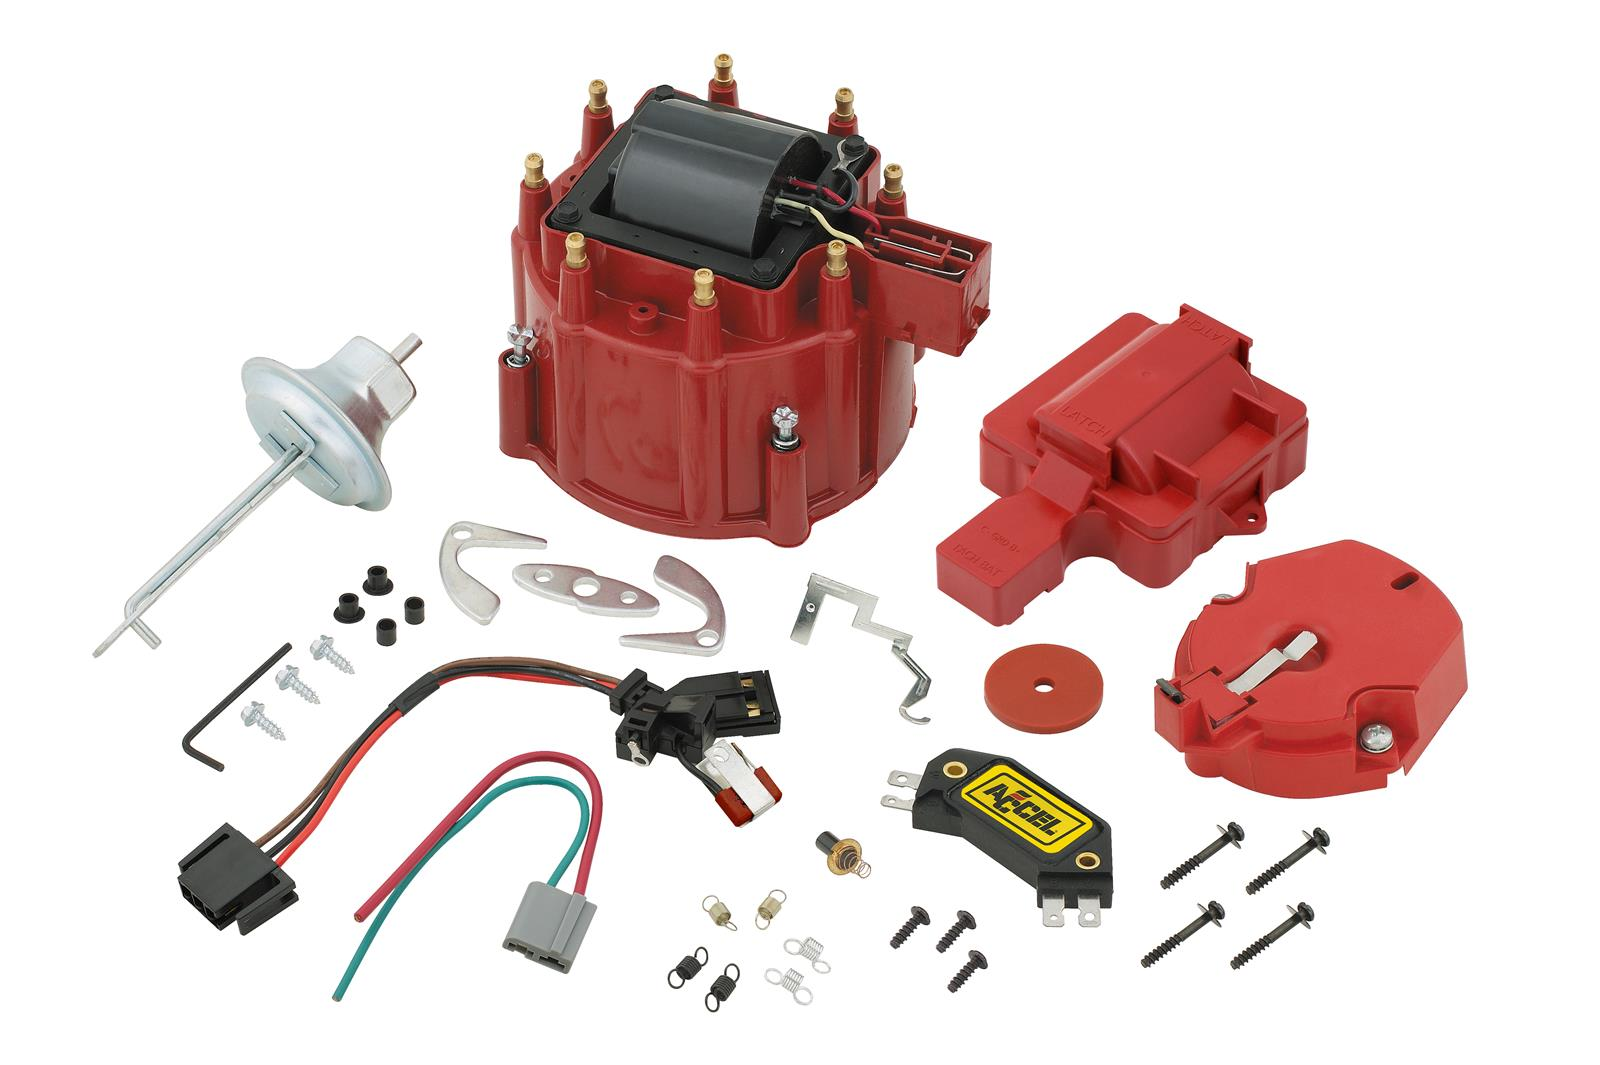 accel hei distributor wiring diagram for house plugs upgrade kit coil cap rotor module gm